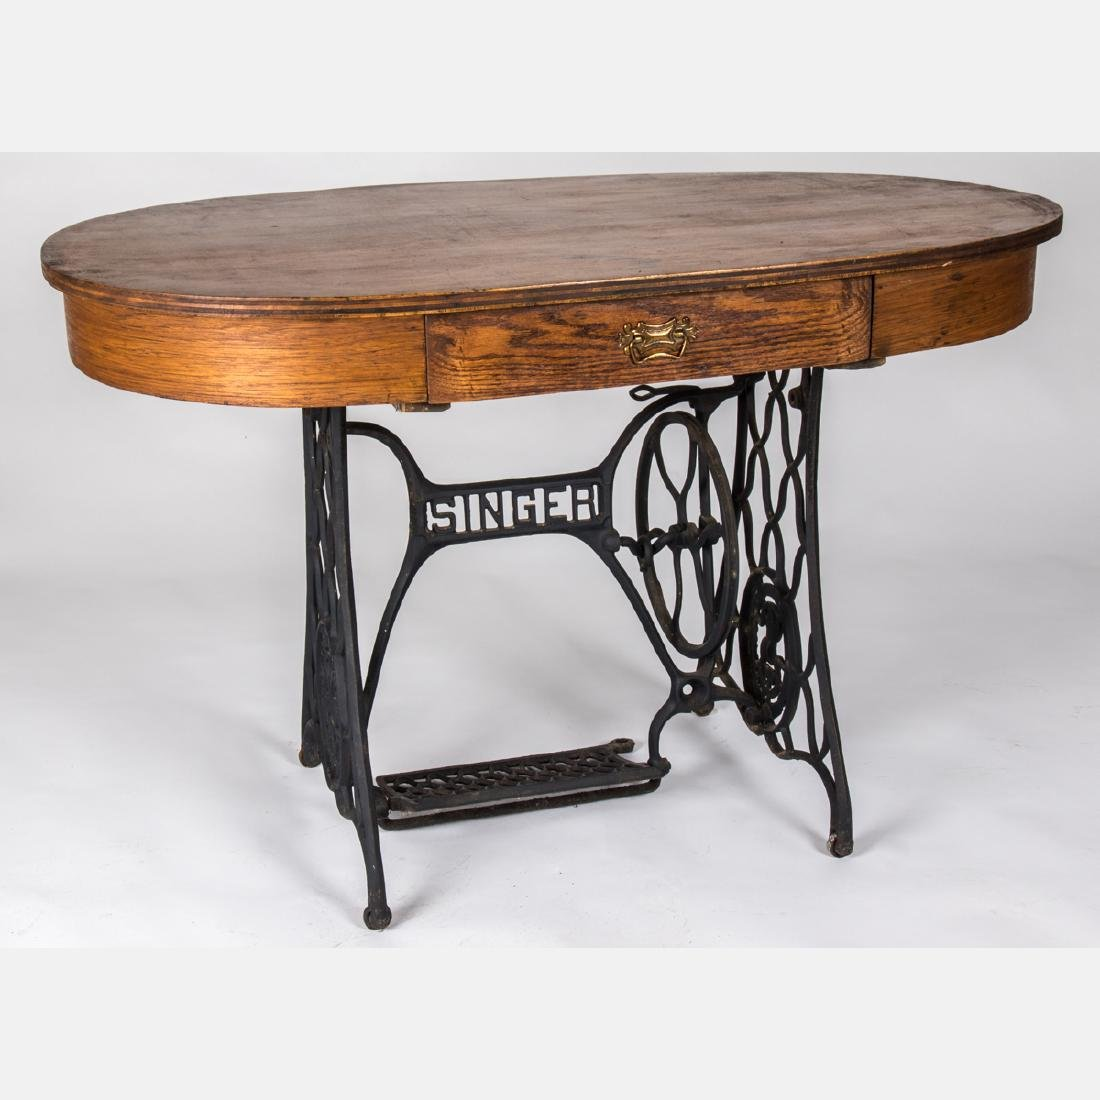 A Vintage Cast Iron Singer Sewing Treadle Base with Oak